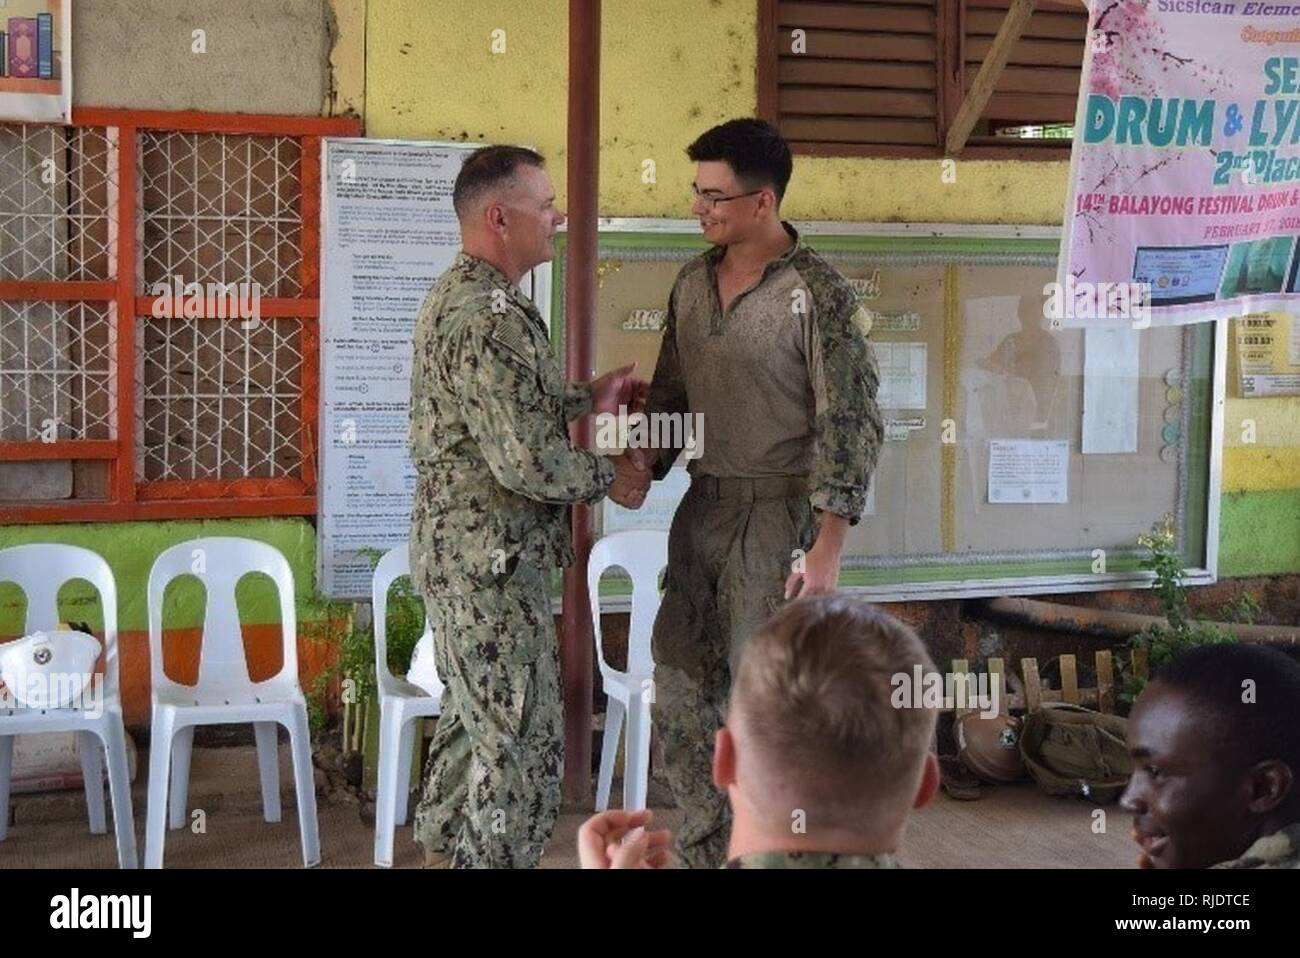 PALAWAN, Philippines (May 18, 2018) 30th Naval Construction Regiment Command Master Chief Joe Arnold presents Builder Constructionman Apprentice Chandler Cruz, assigned to Naval Mobile Construction Battalion (NMCB) 5, a coin in recognition of his efforts above and beyond expectations. NMCB 5 is forward deployed to execute construction, humanitarian and foreign assistance, and theater security cooperation support of United States Pacific Command. - Stock Image